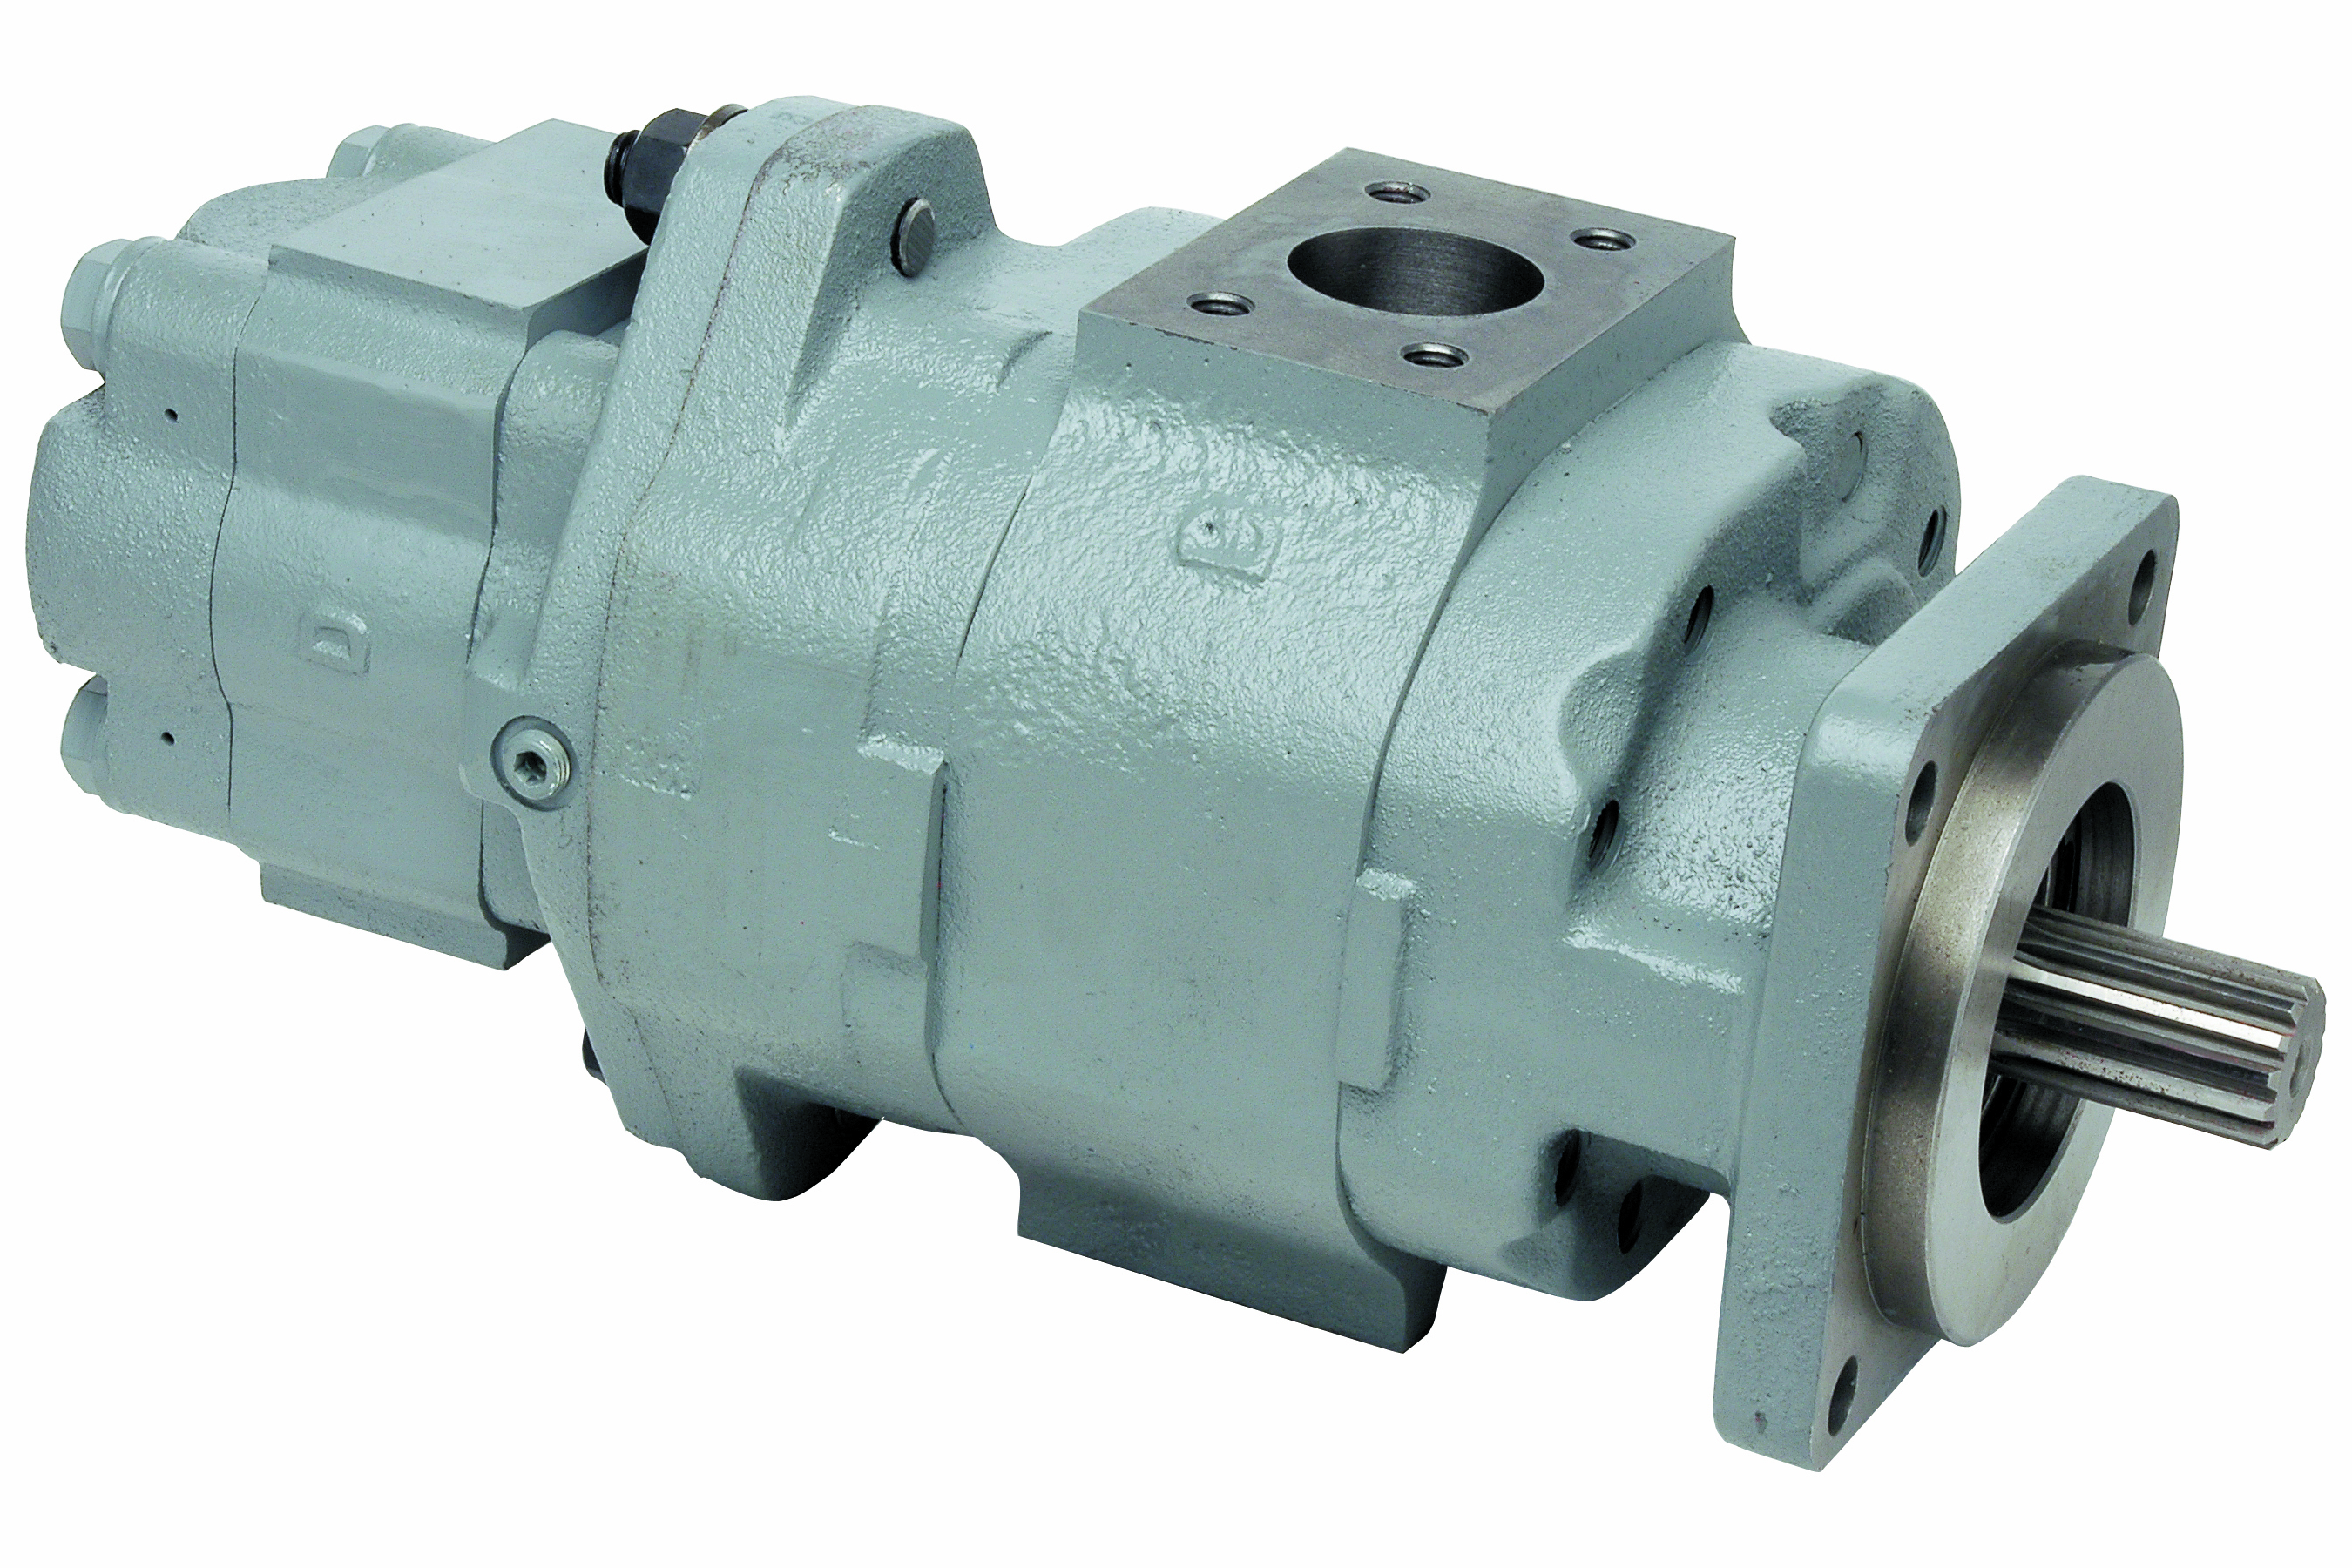 GEAR PUMP MHP76 Through Drive Gear Pump